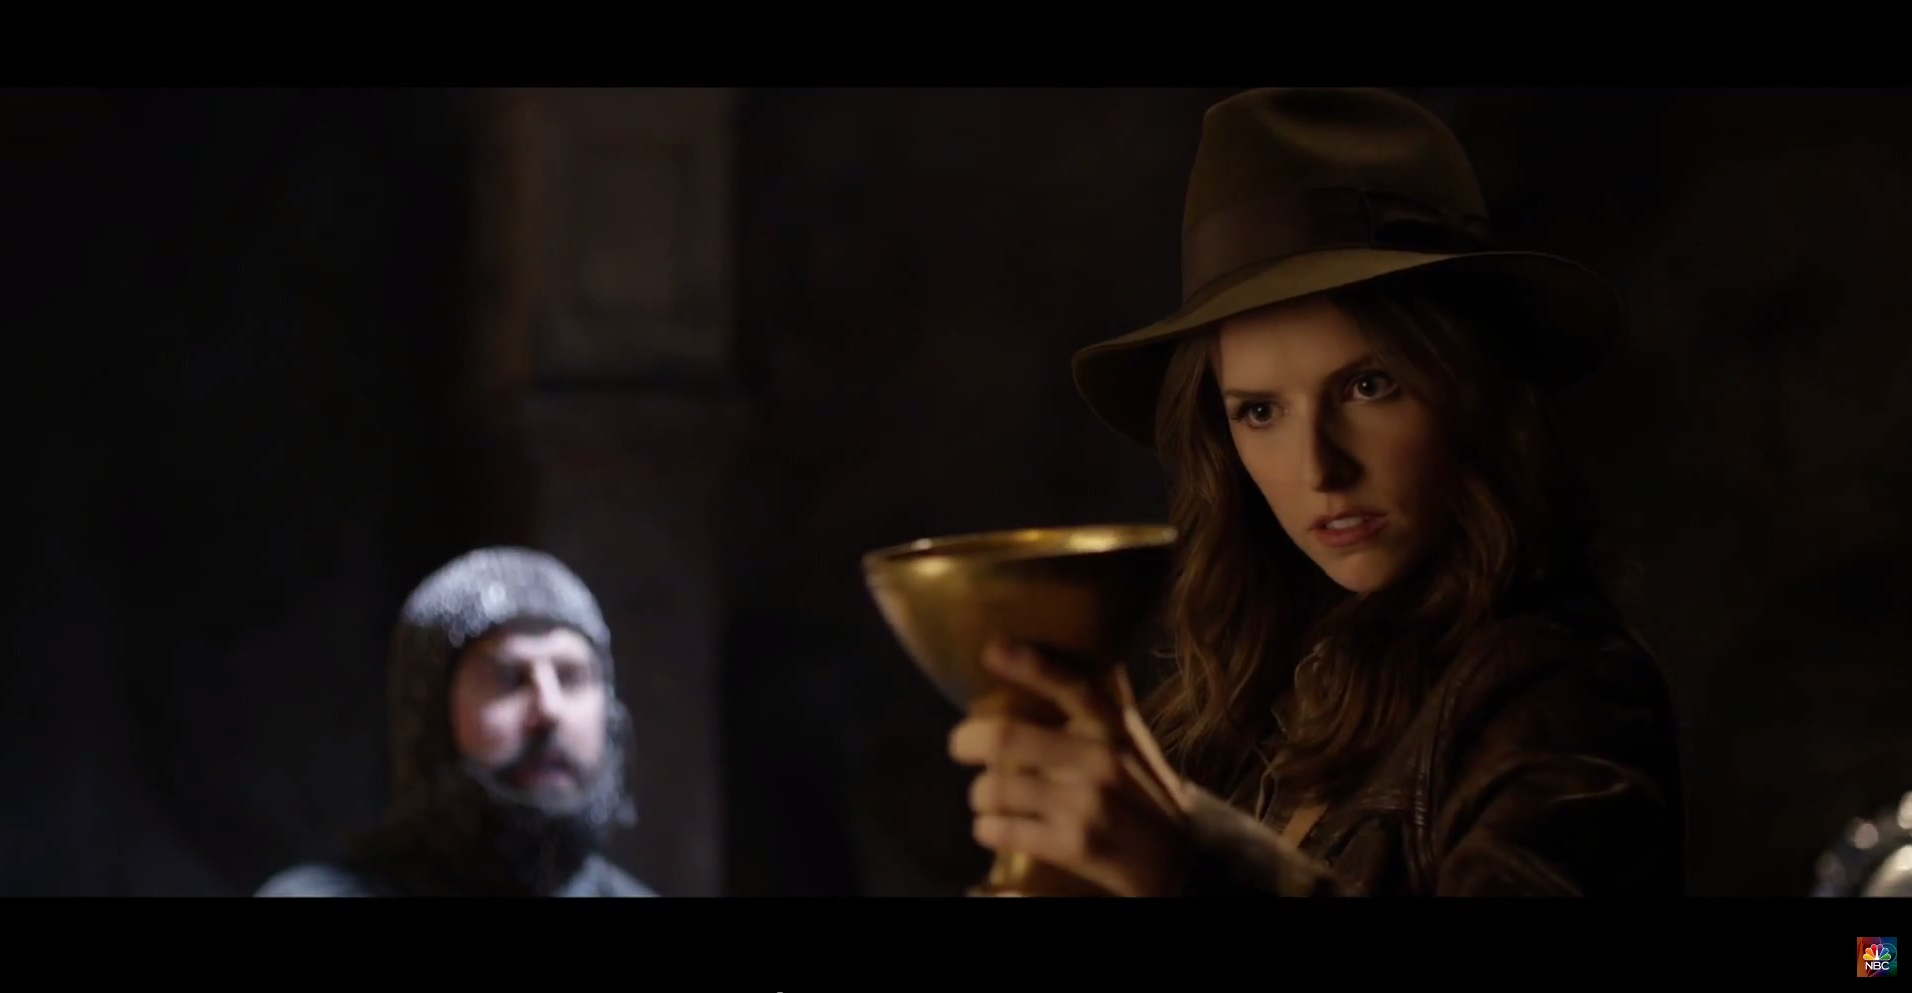 Anna Kendrick whips up a storm in hilarious Indiana Jones parody